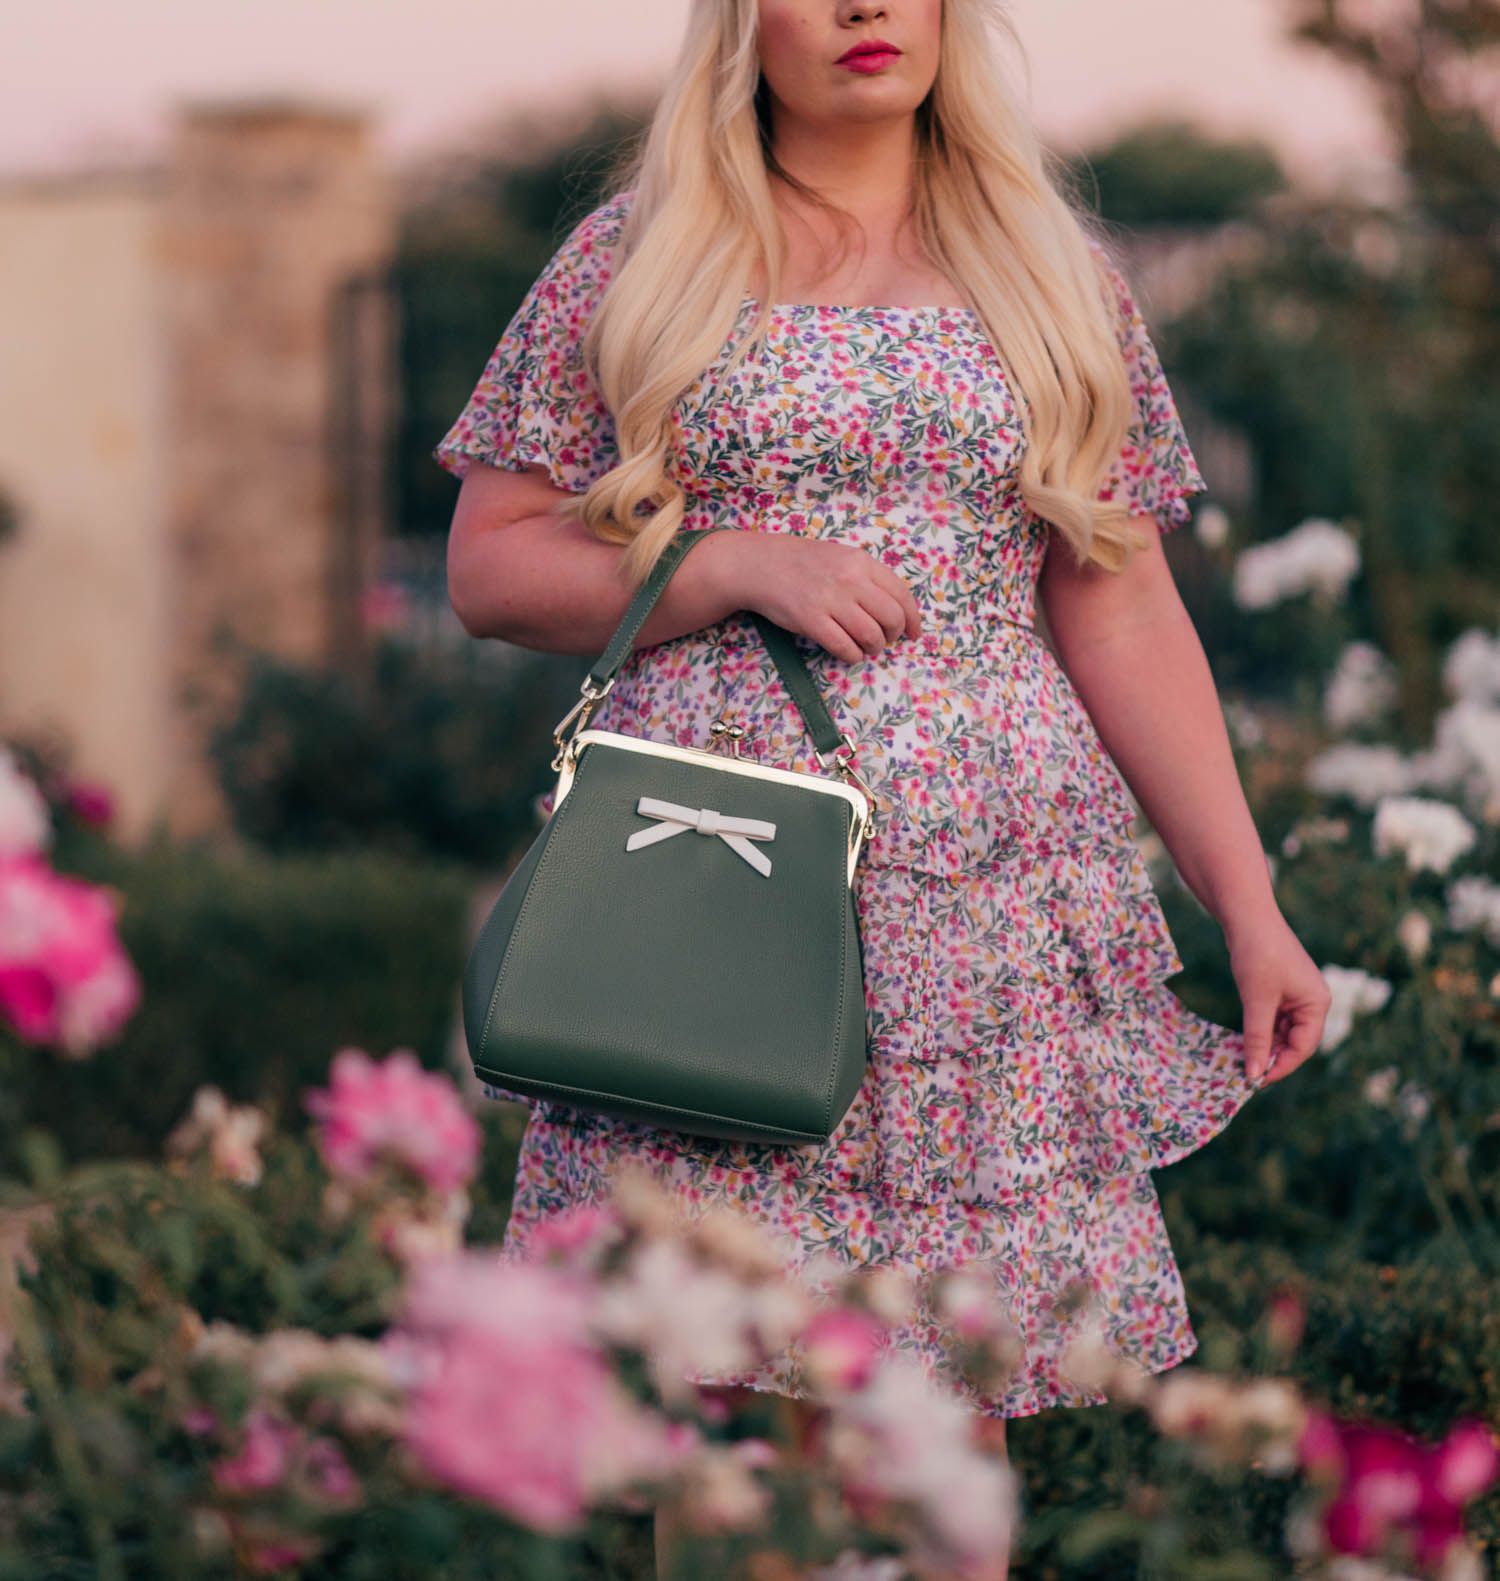 Fashion Blogger Elizabeth Hugen of Lizzie in Lace shares her girly handbag collection including this vintage inspired bow handbag